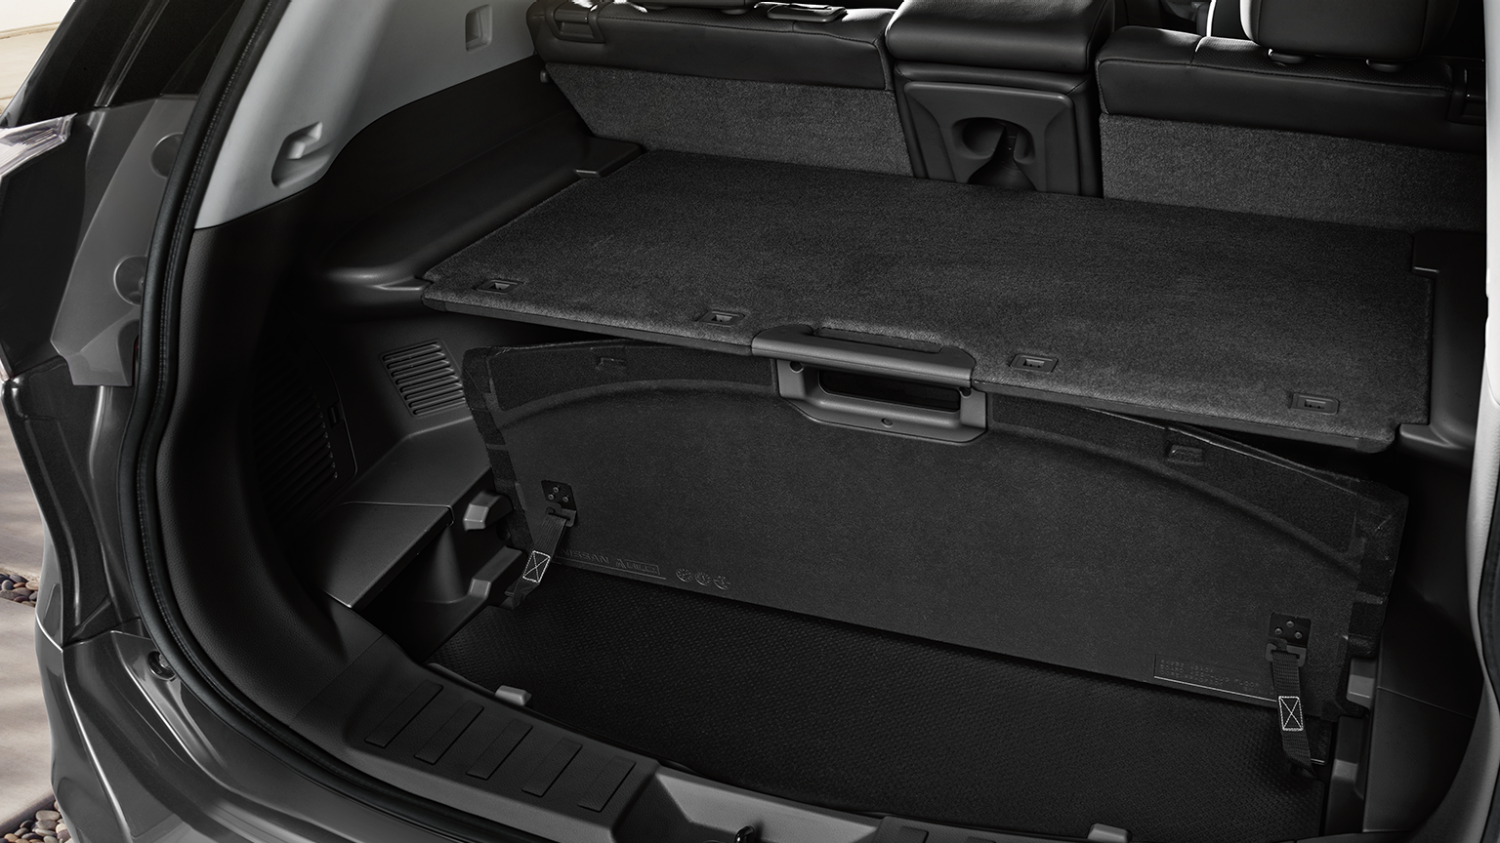 Nissan X-Trail | Secret loading space